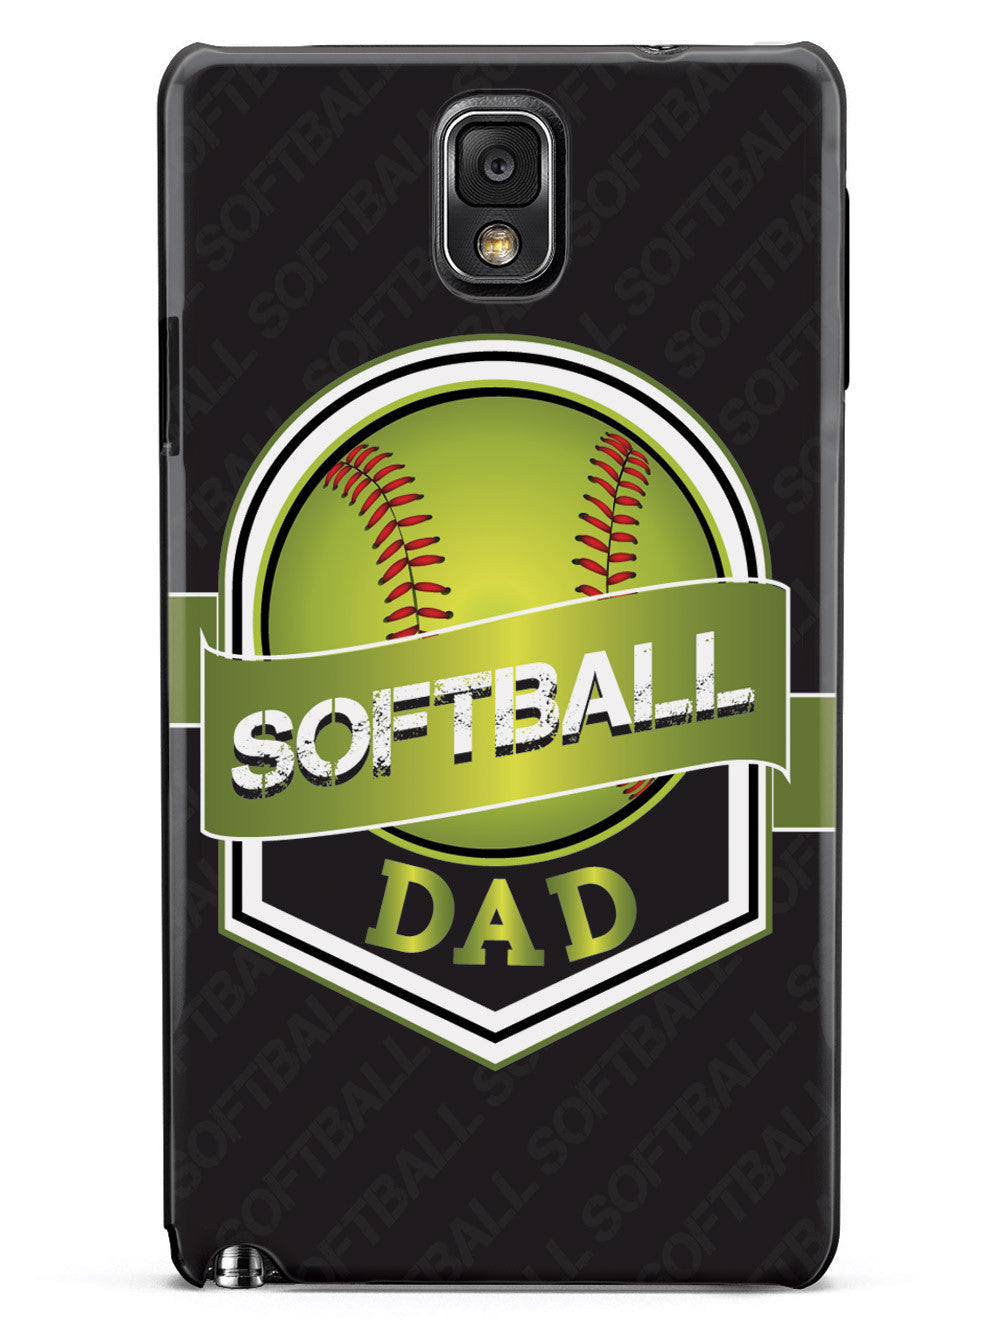 Softball Dad Case